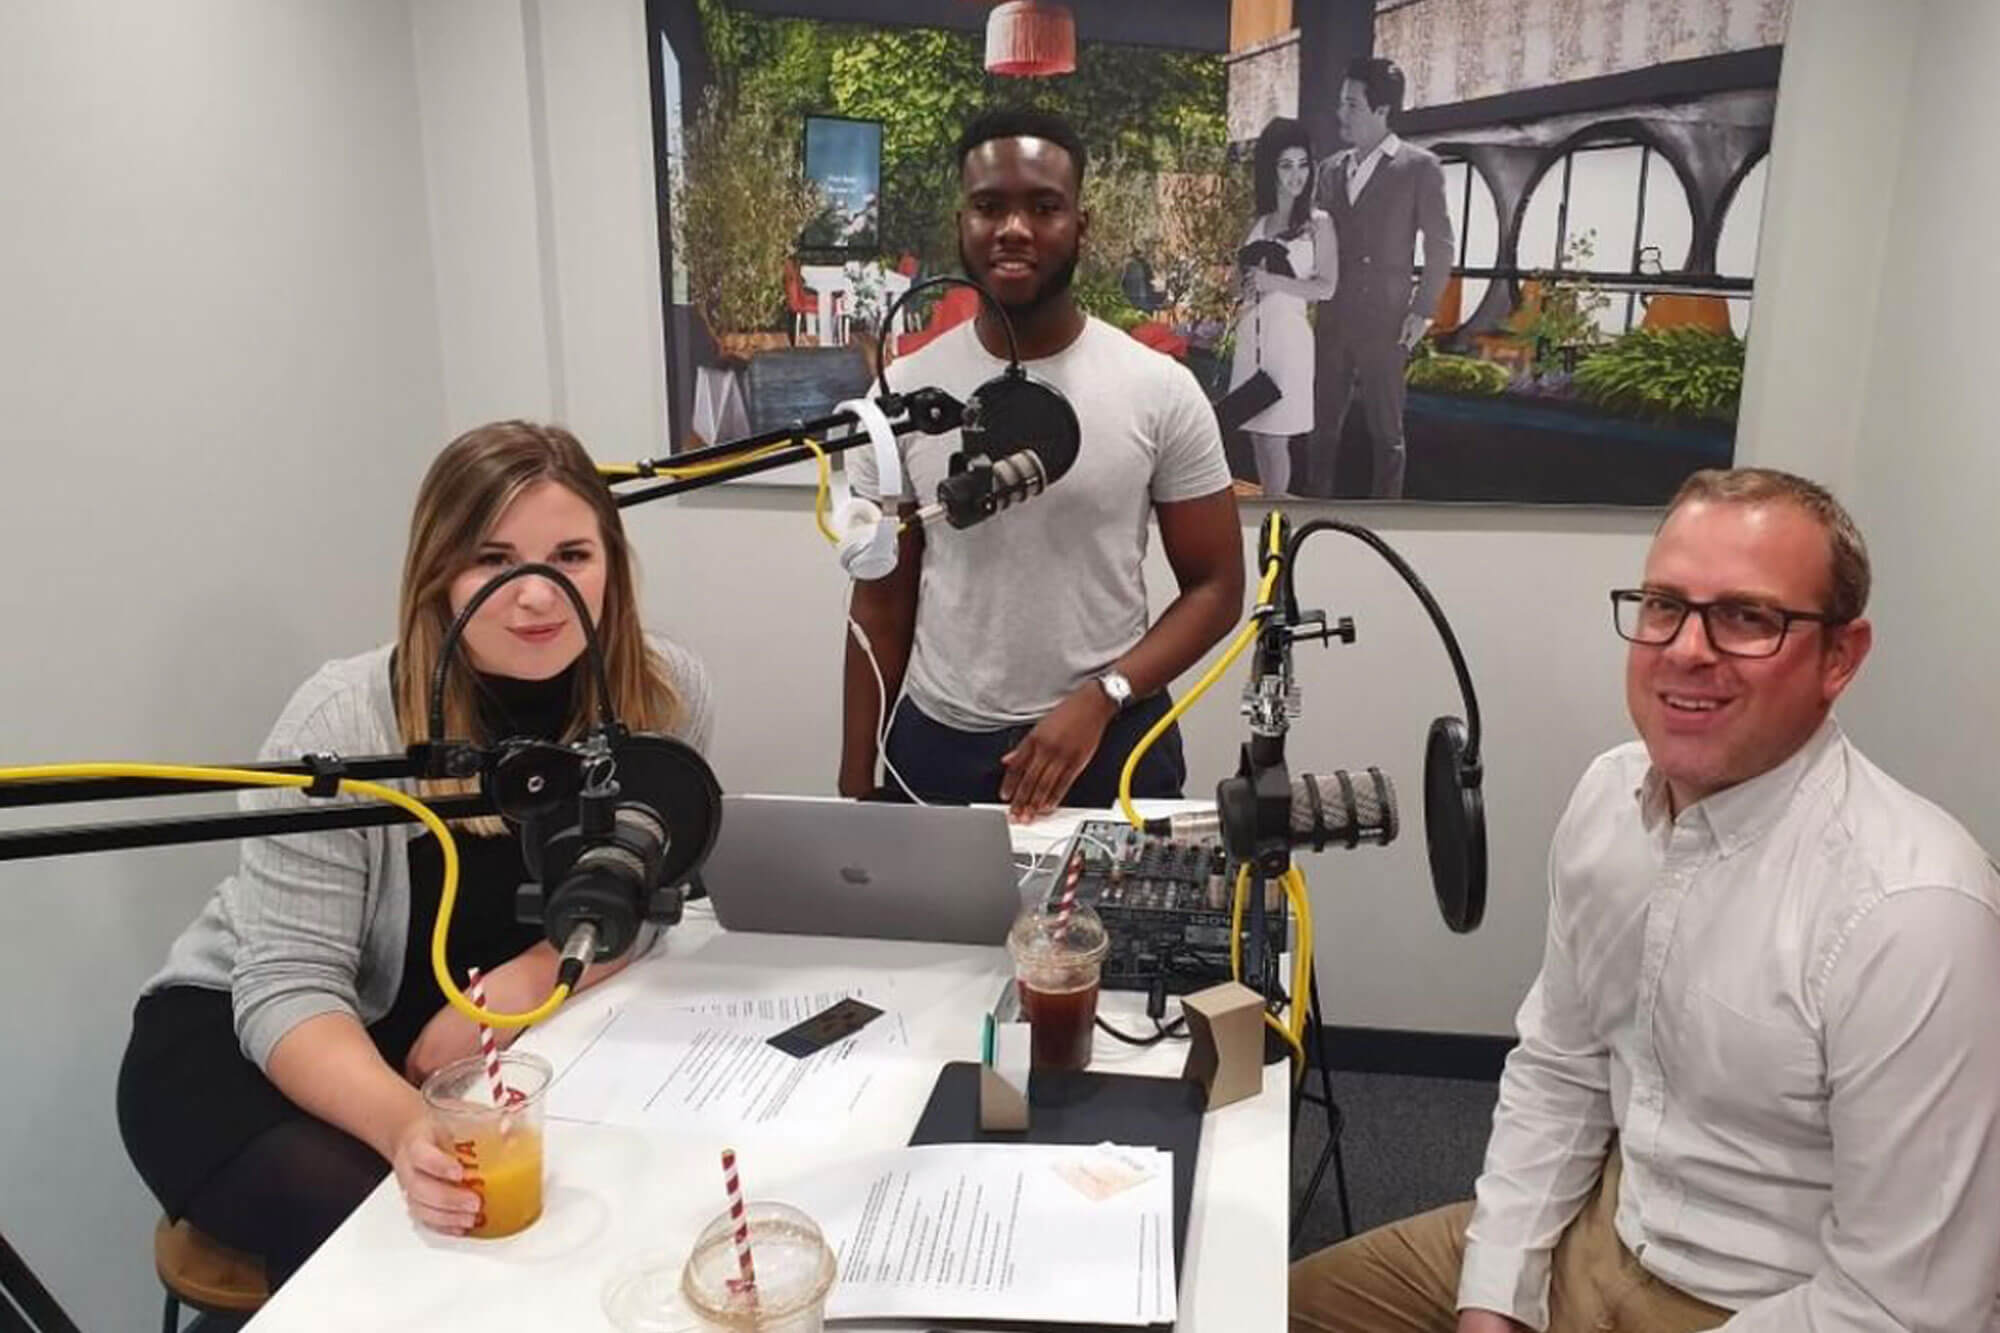 3 people, 2 men and a girl, looking at the camera around podcast equipment.